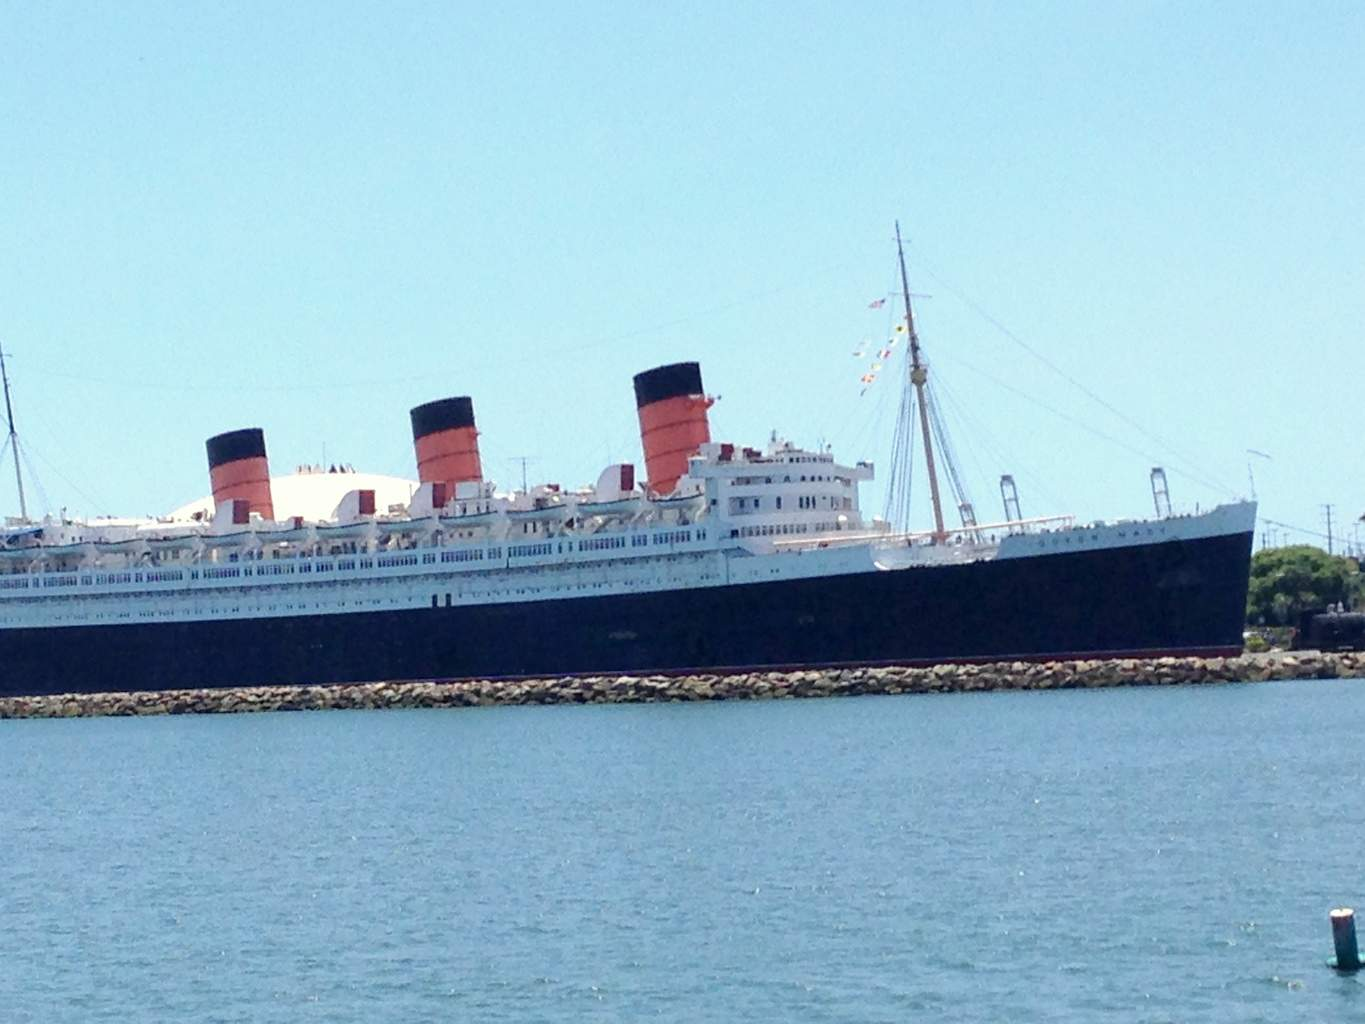 Historic Queen Mary madeinaday.com